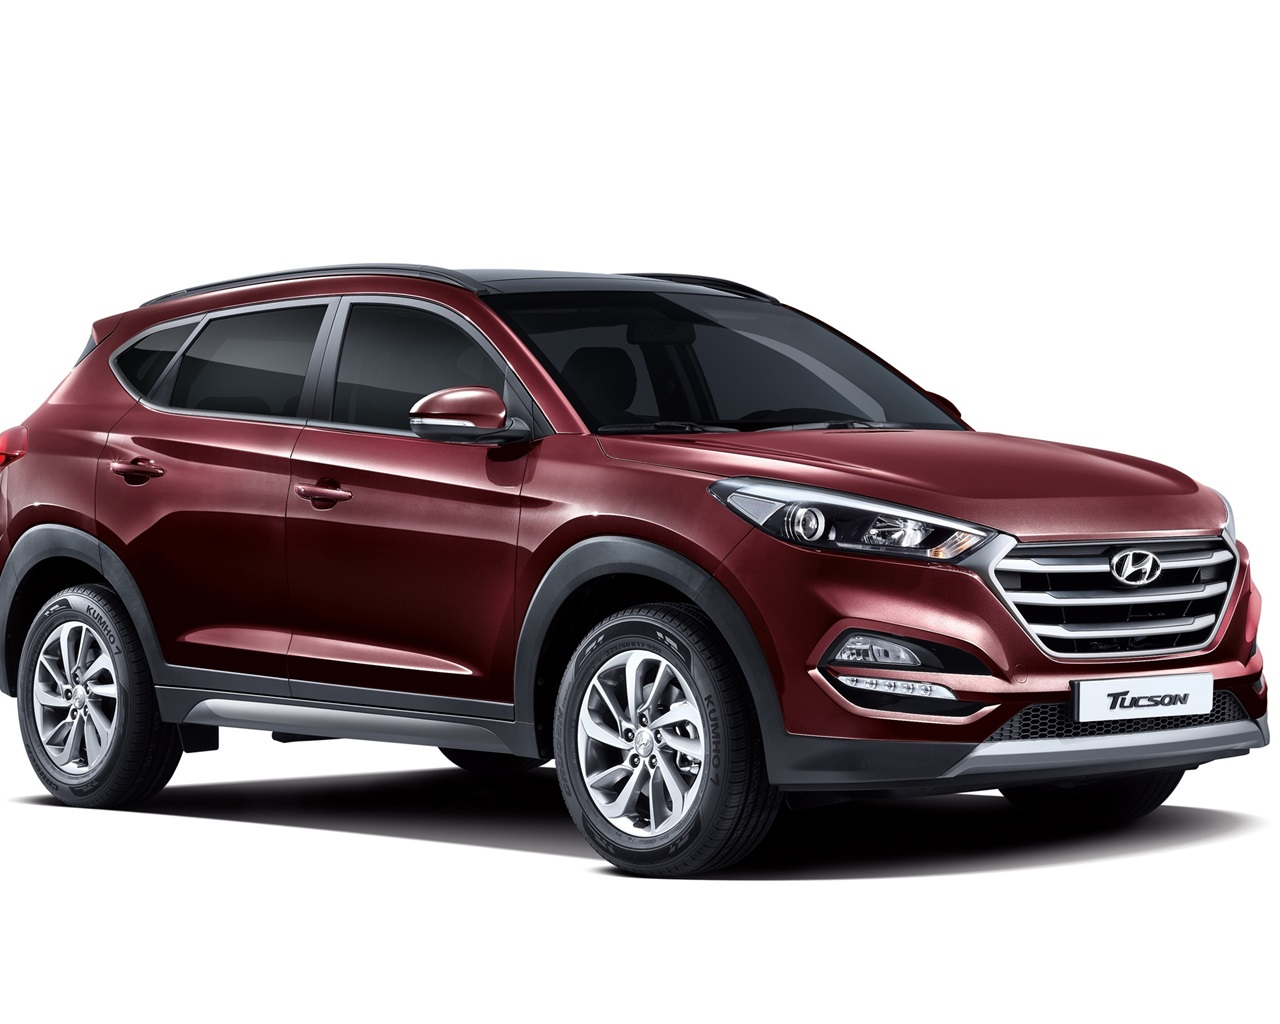 2015 hyundai tucson suv features specs edmunds. Black Bedroom Furniture Sets. Home Design Ideas